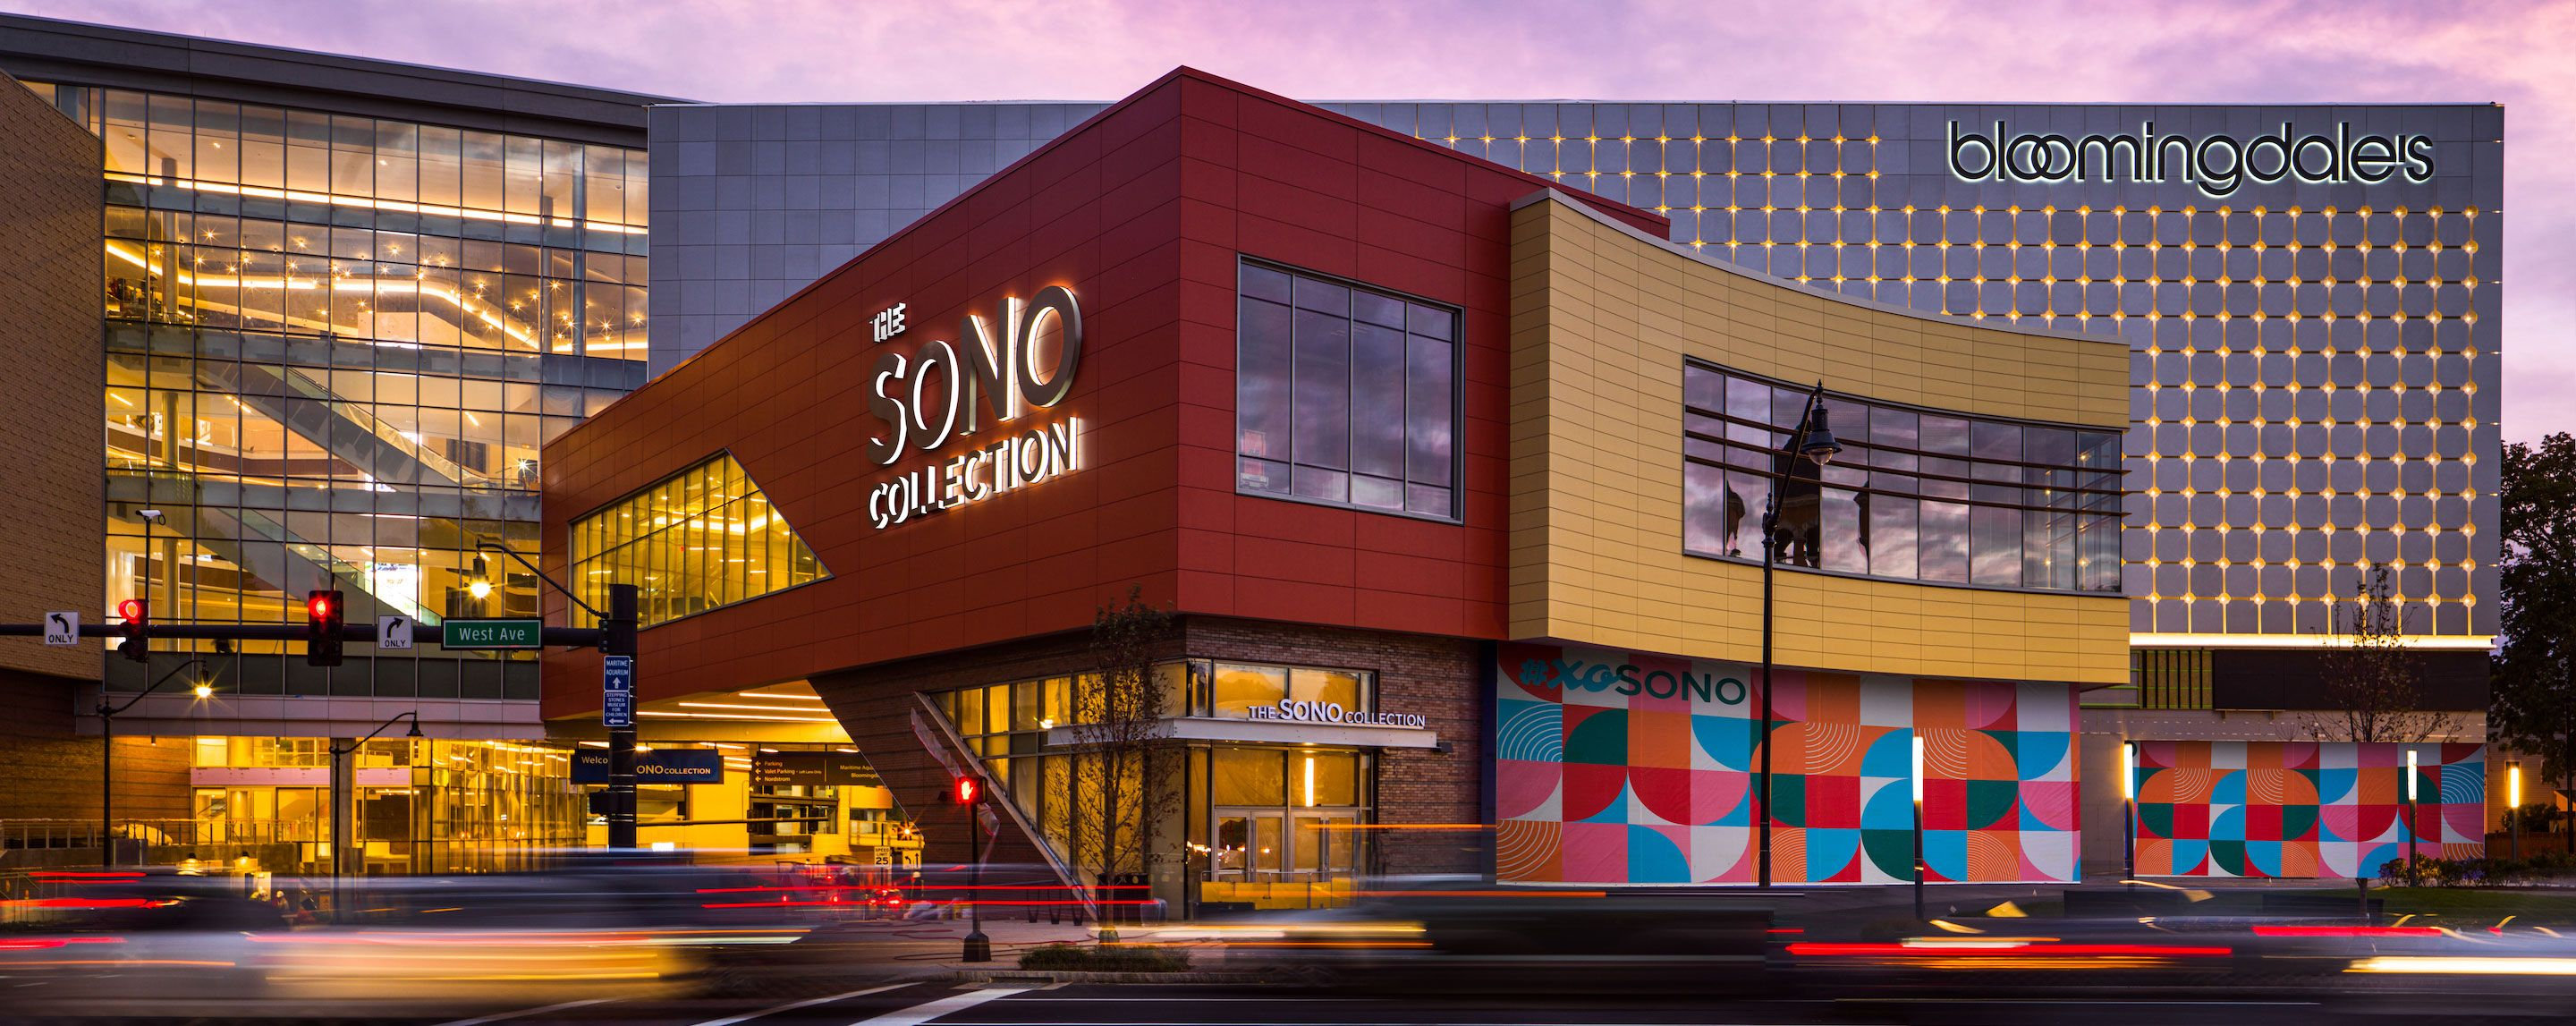 A two storied building with the words The SONO Collection stands near a larger building housing the Bloomingdale store.